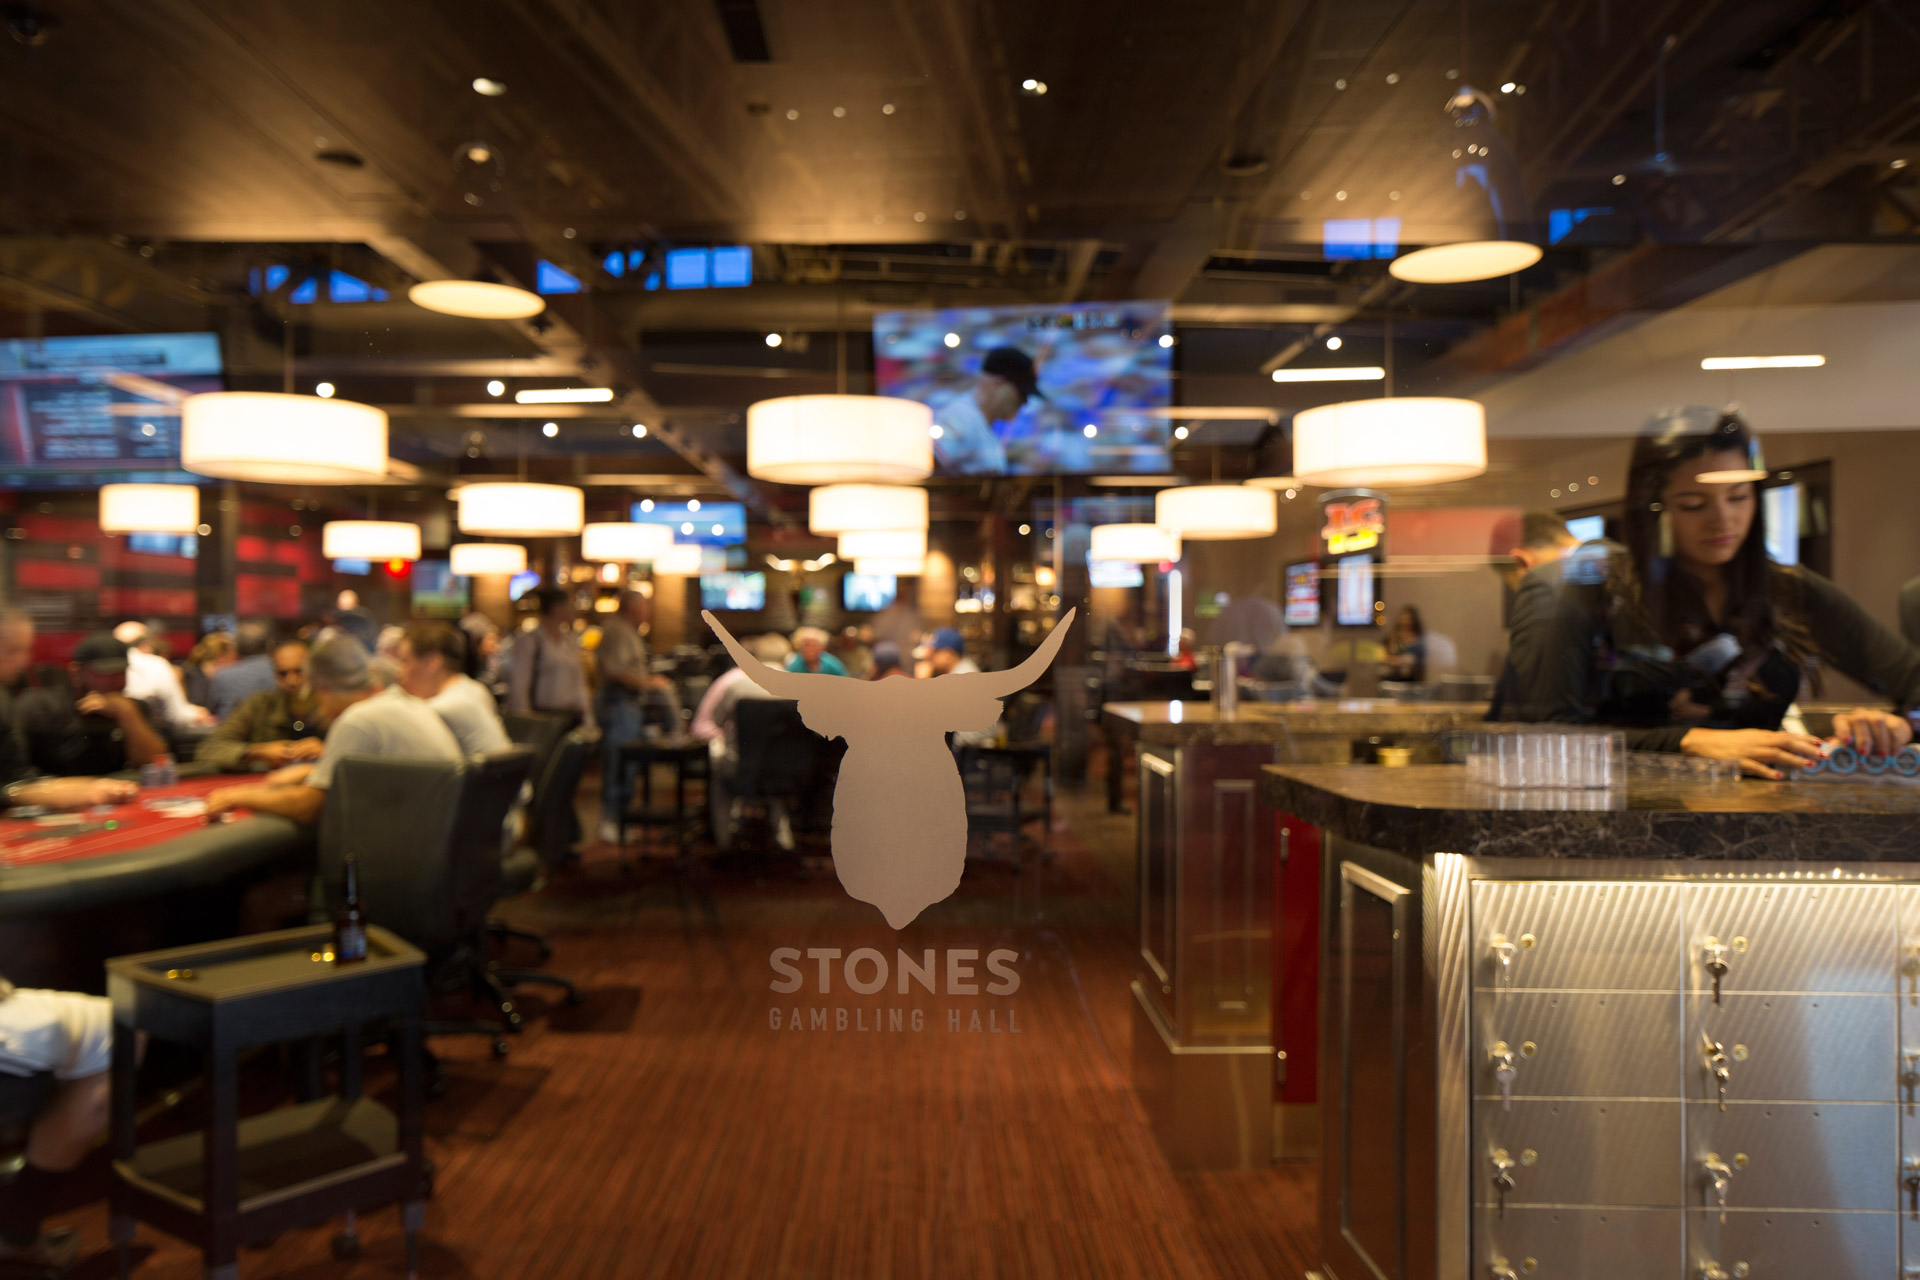 Stones Gambling Hall retail store modern design